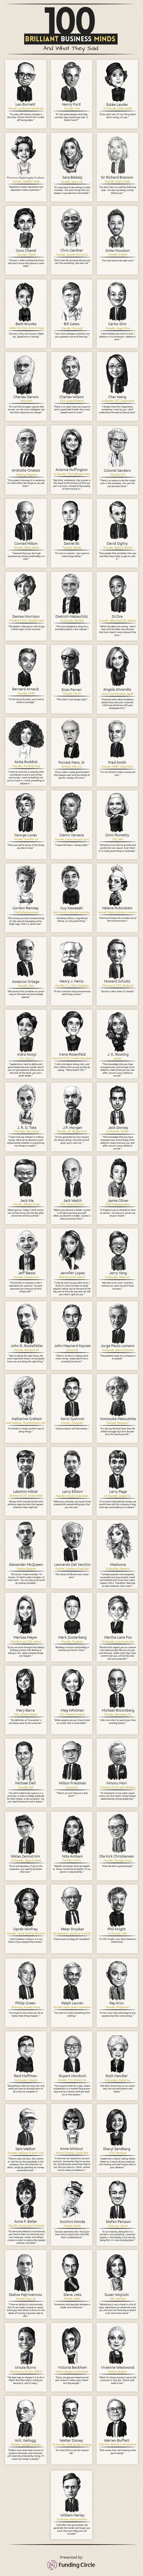 100 Inspirational Quotes from the World's Best Business Leaders [Infographic]